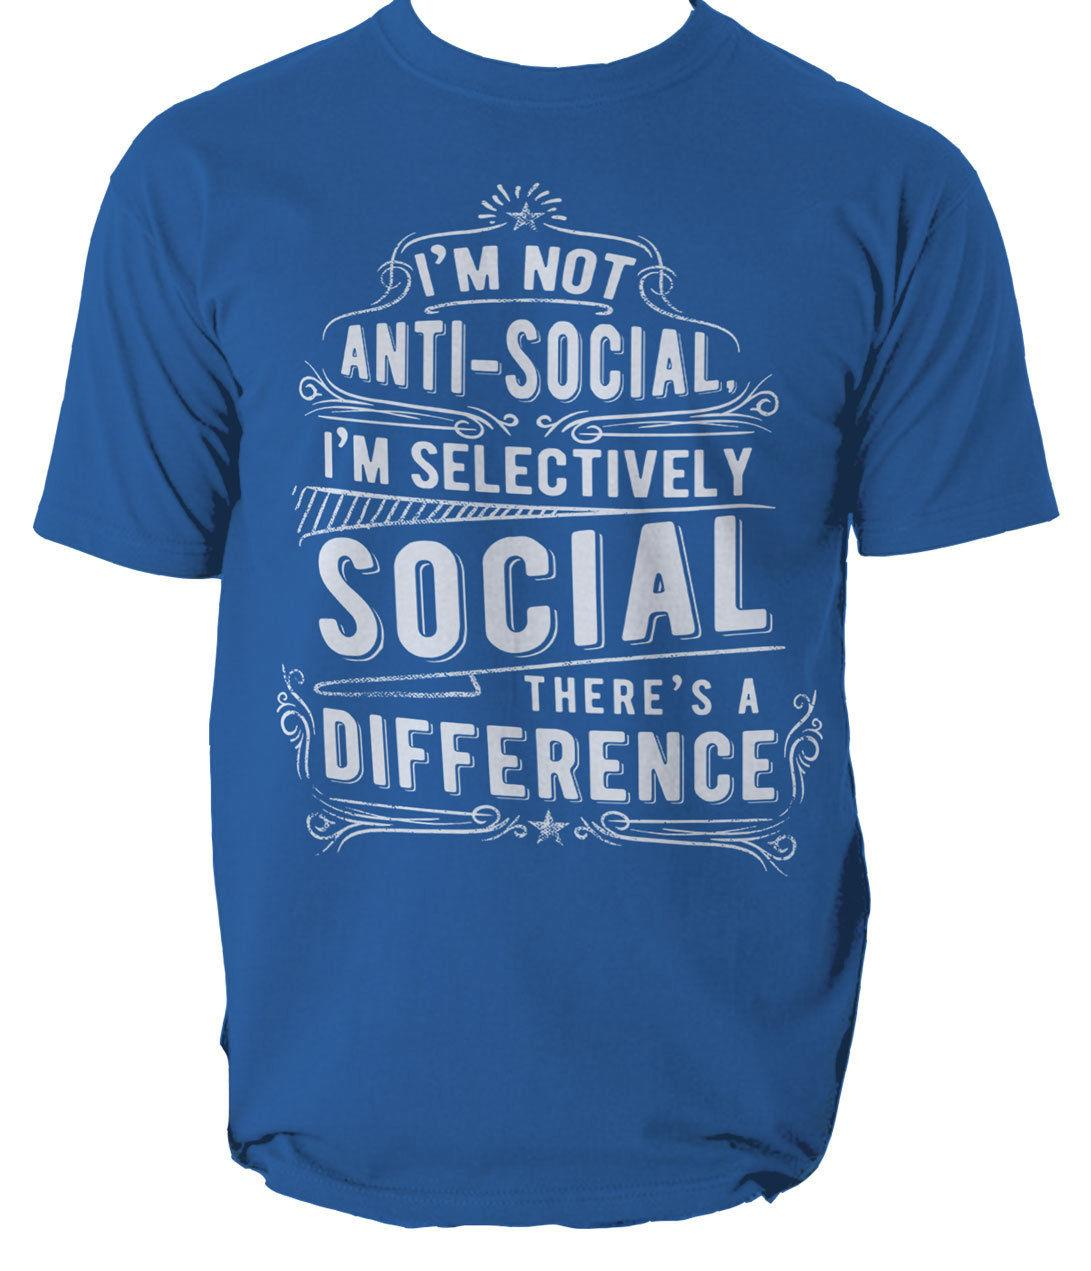 8a85188e I M Not Anti Social T Shirt Motto Party S 3XL Cool Casual Pride T Shirt Men  Unisex New Fashion Tshirt Loose Size Top Ajax Tee S It T Shirts From ...